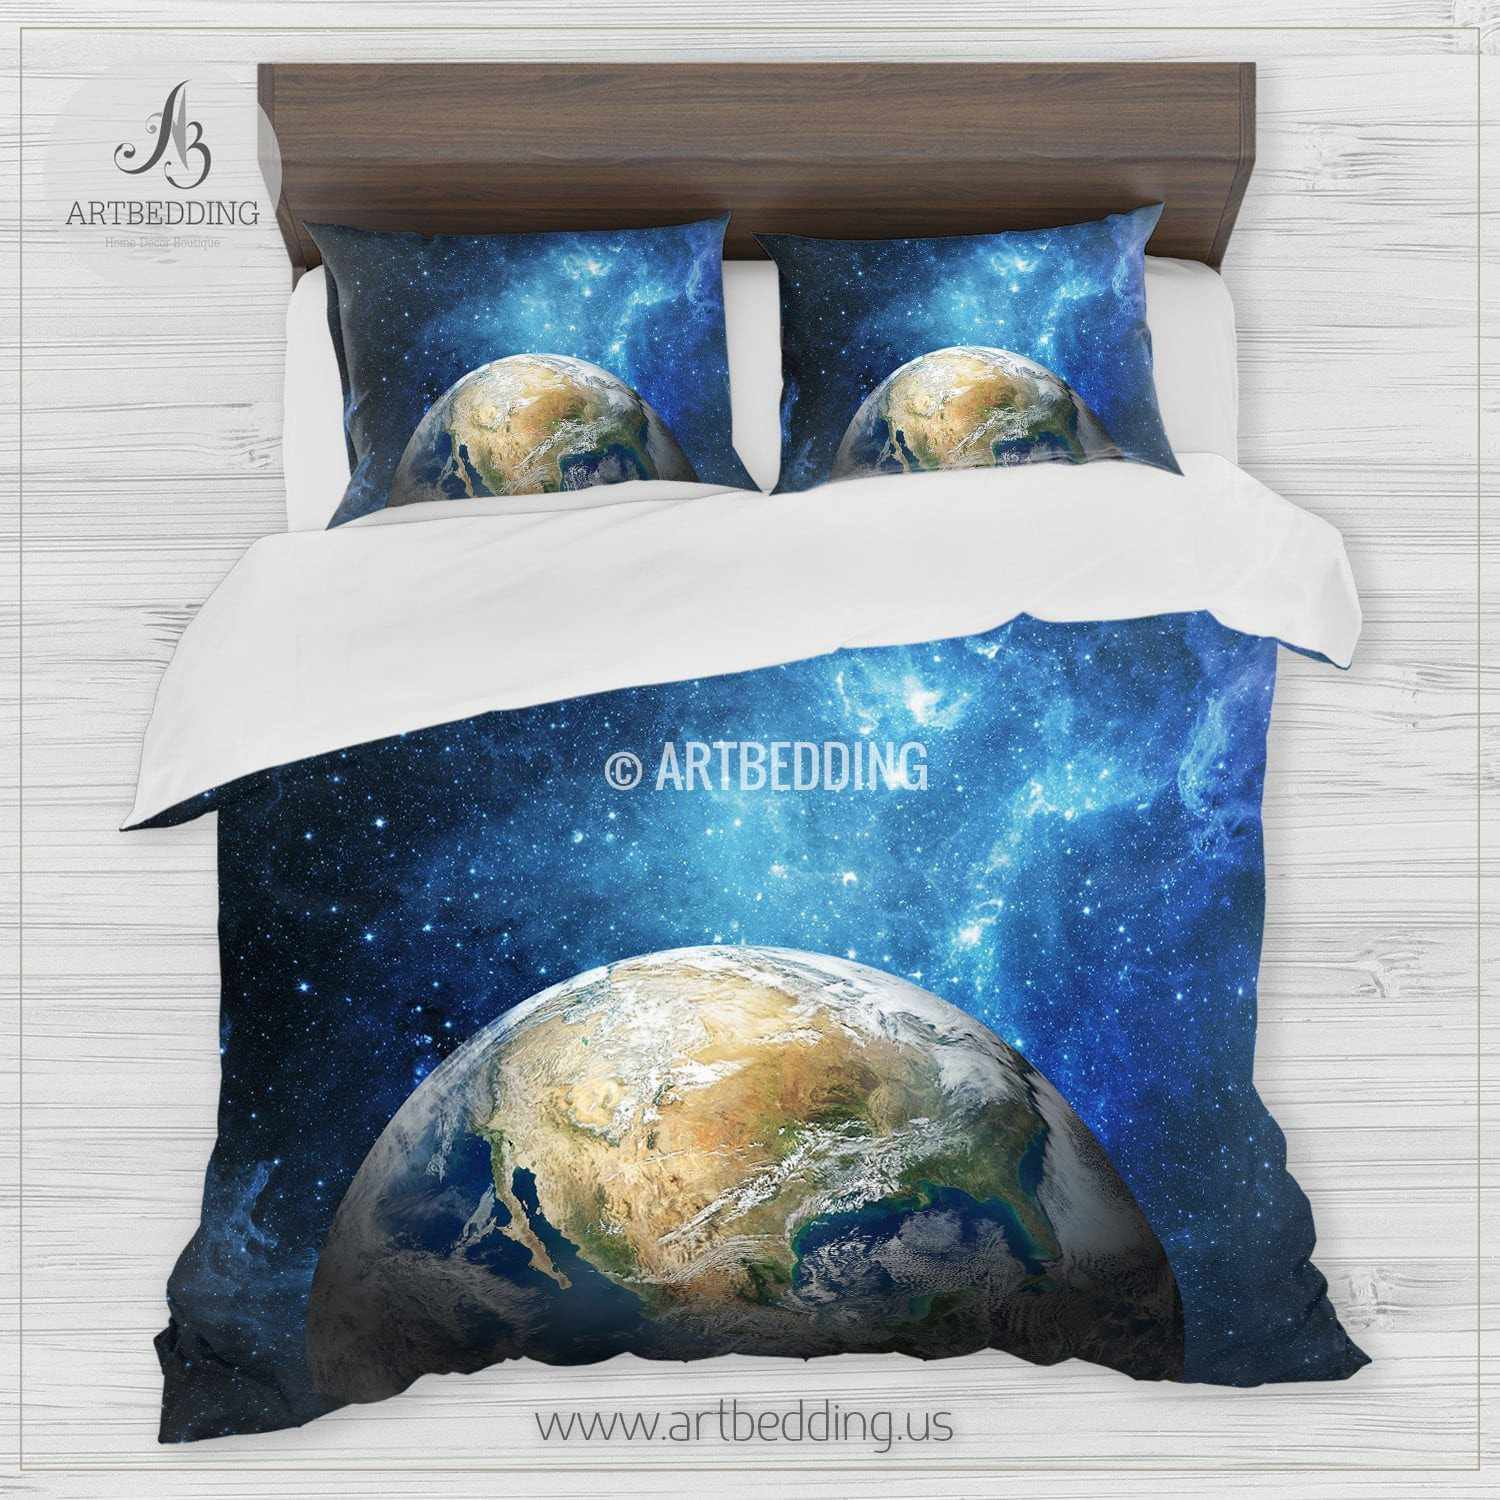 galaxy bedding set earth from space duvet cover set stars nebula bedding set - Galaxy Bedding Set